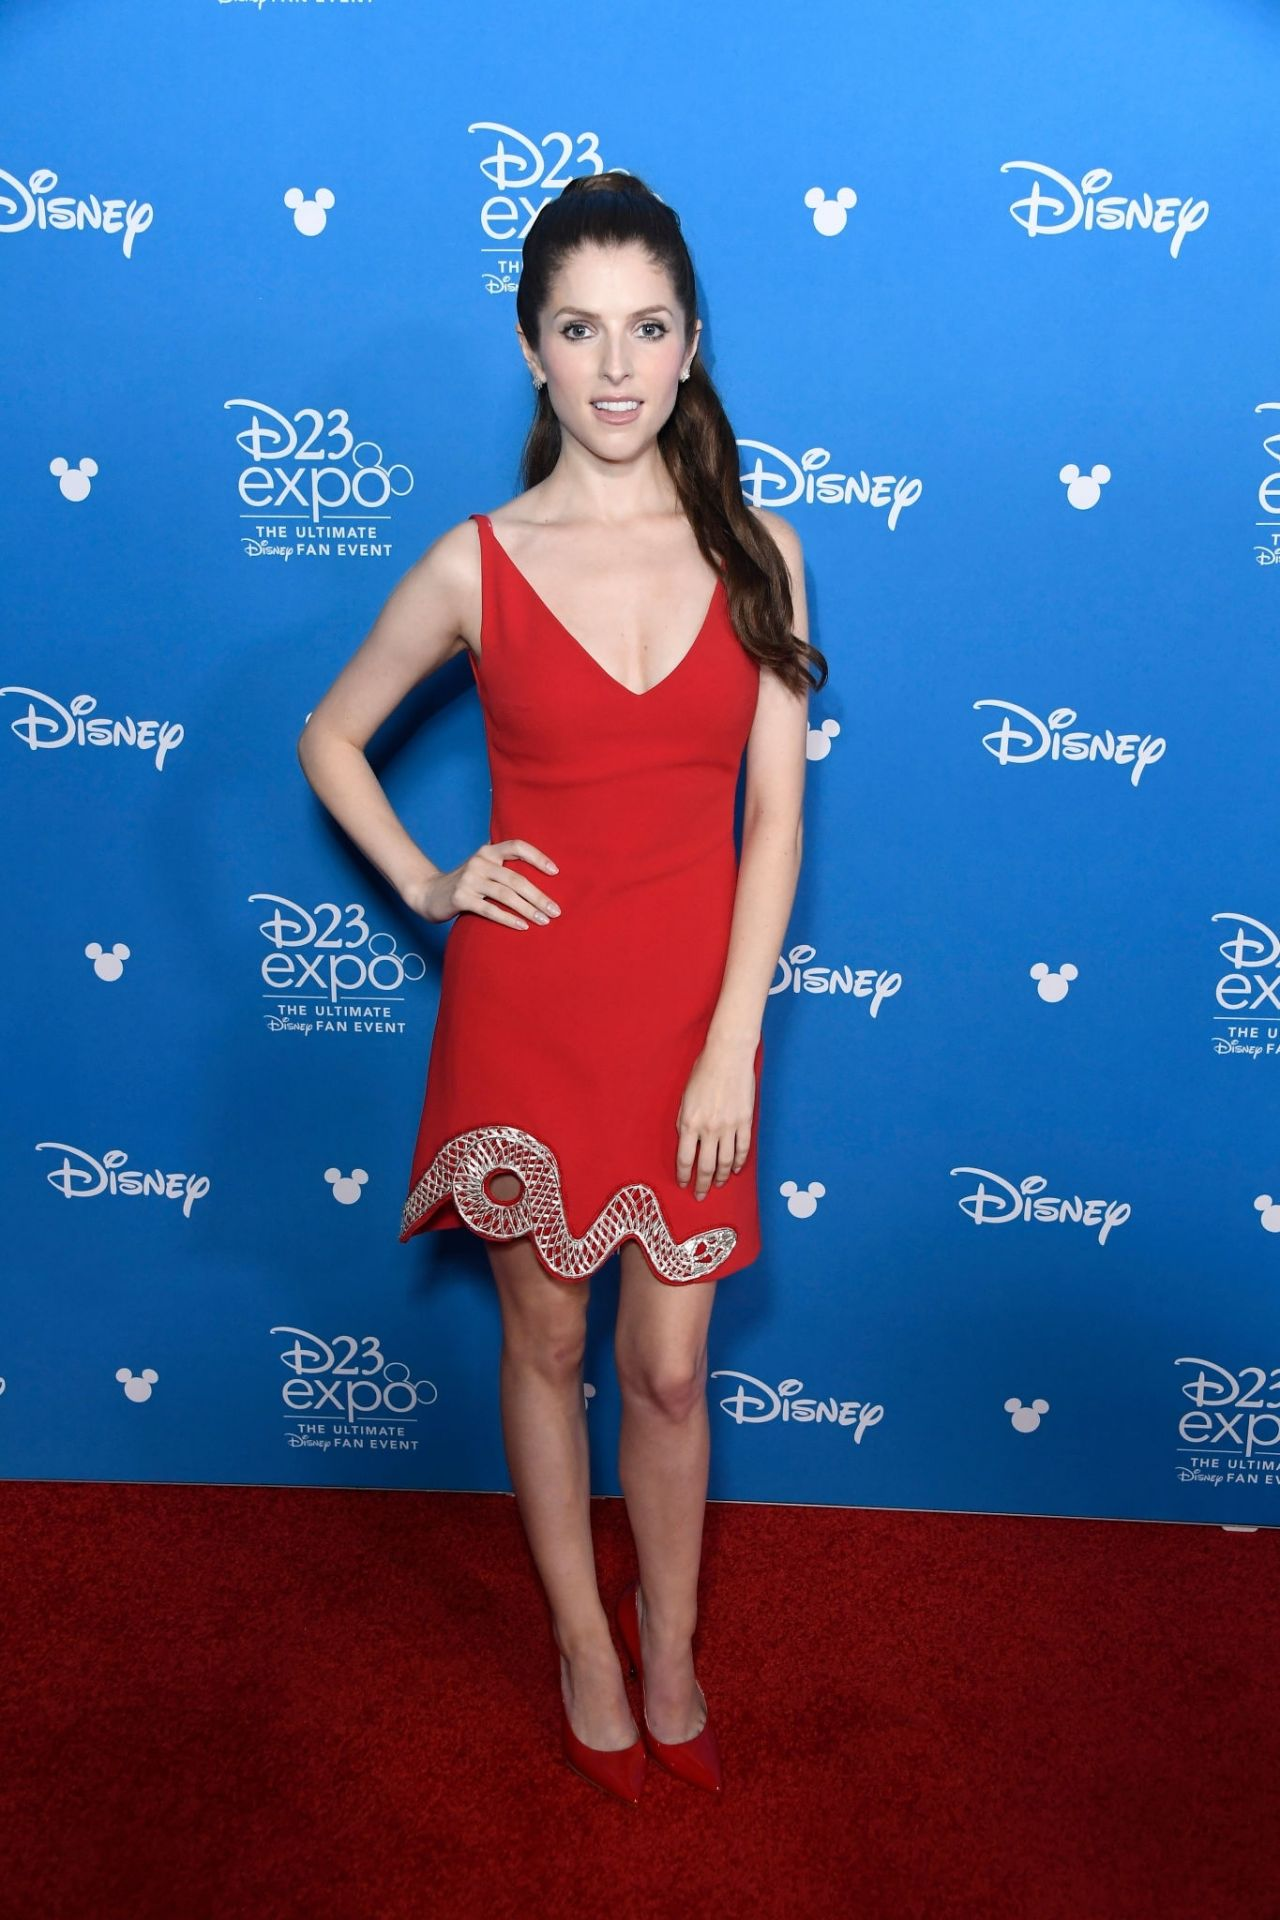 Anna Kendrick at some Disney event in California